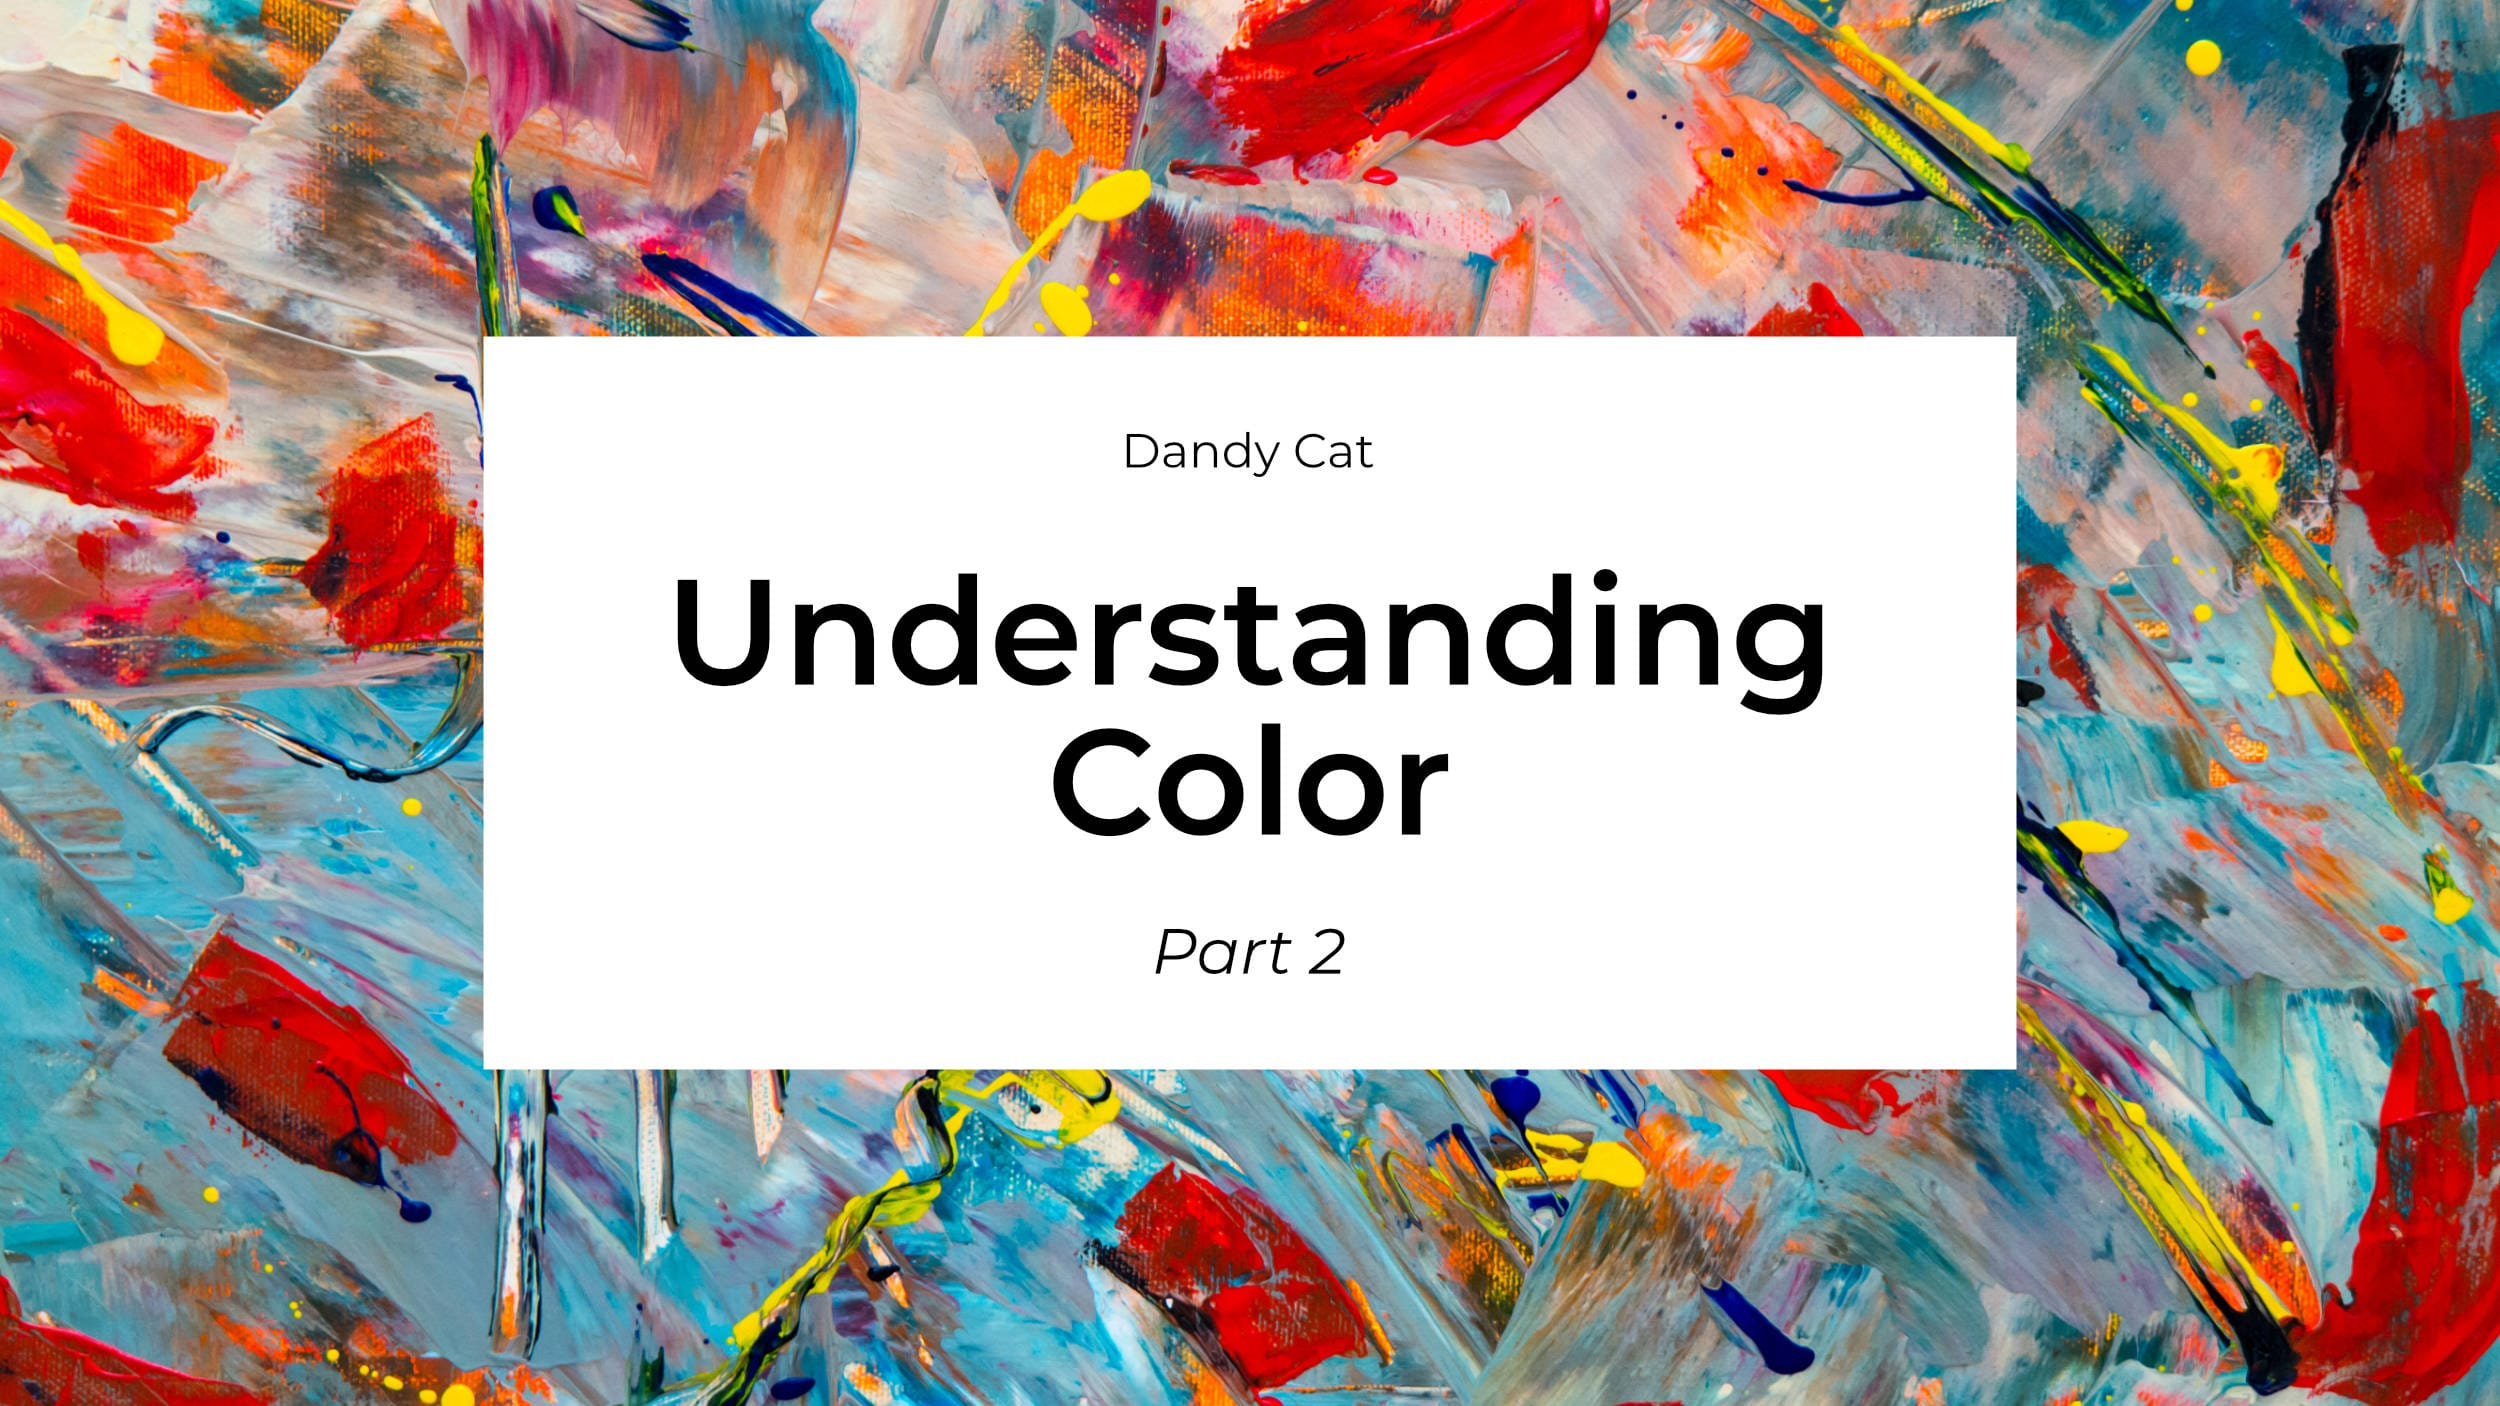 Understanding Color 2.jpg